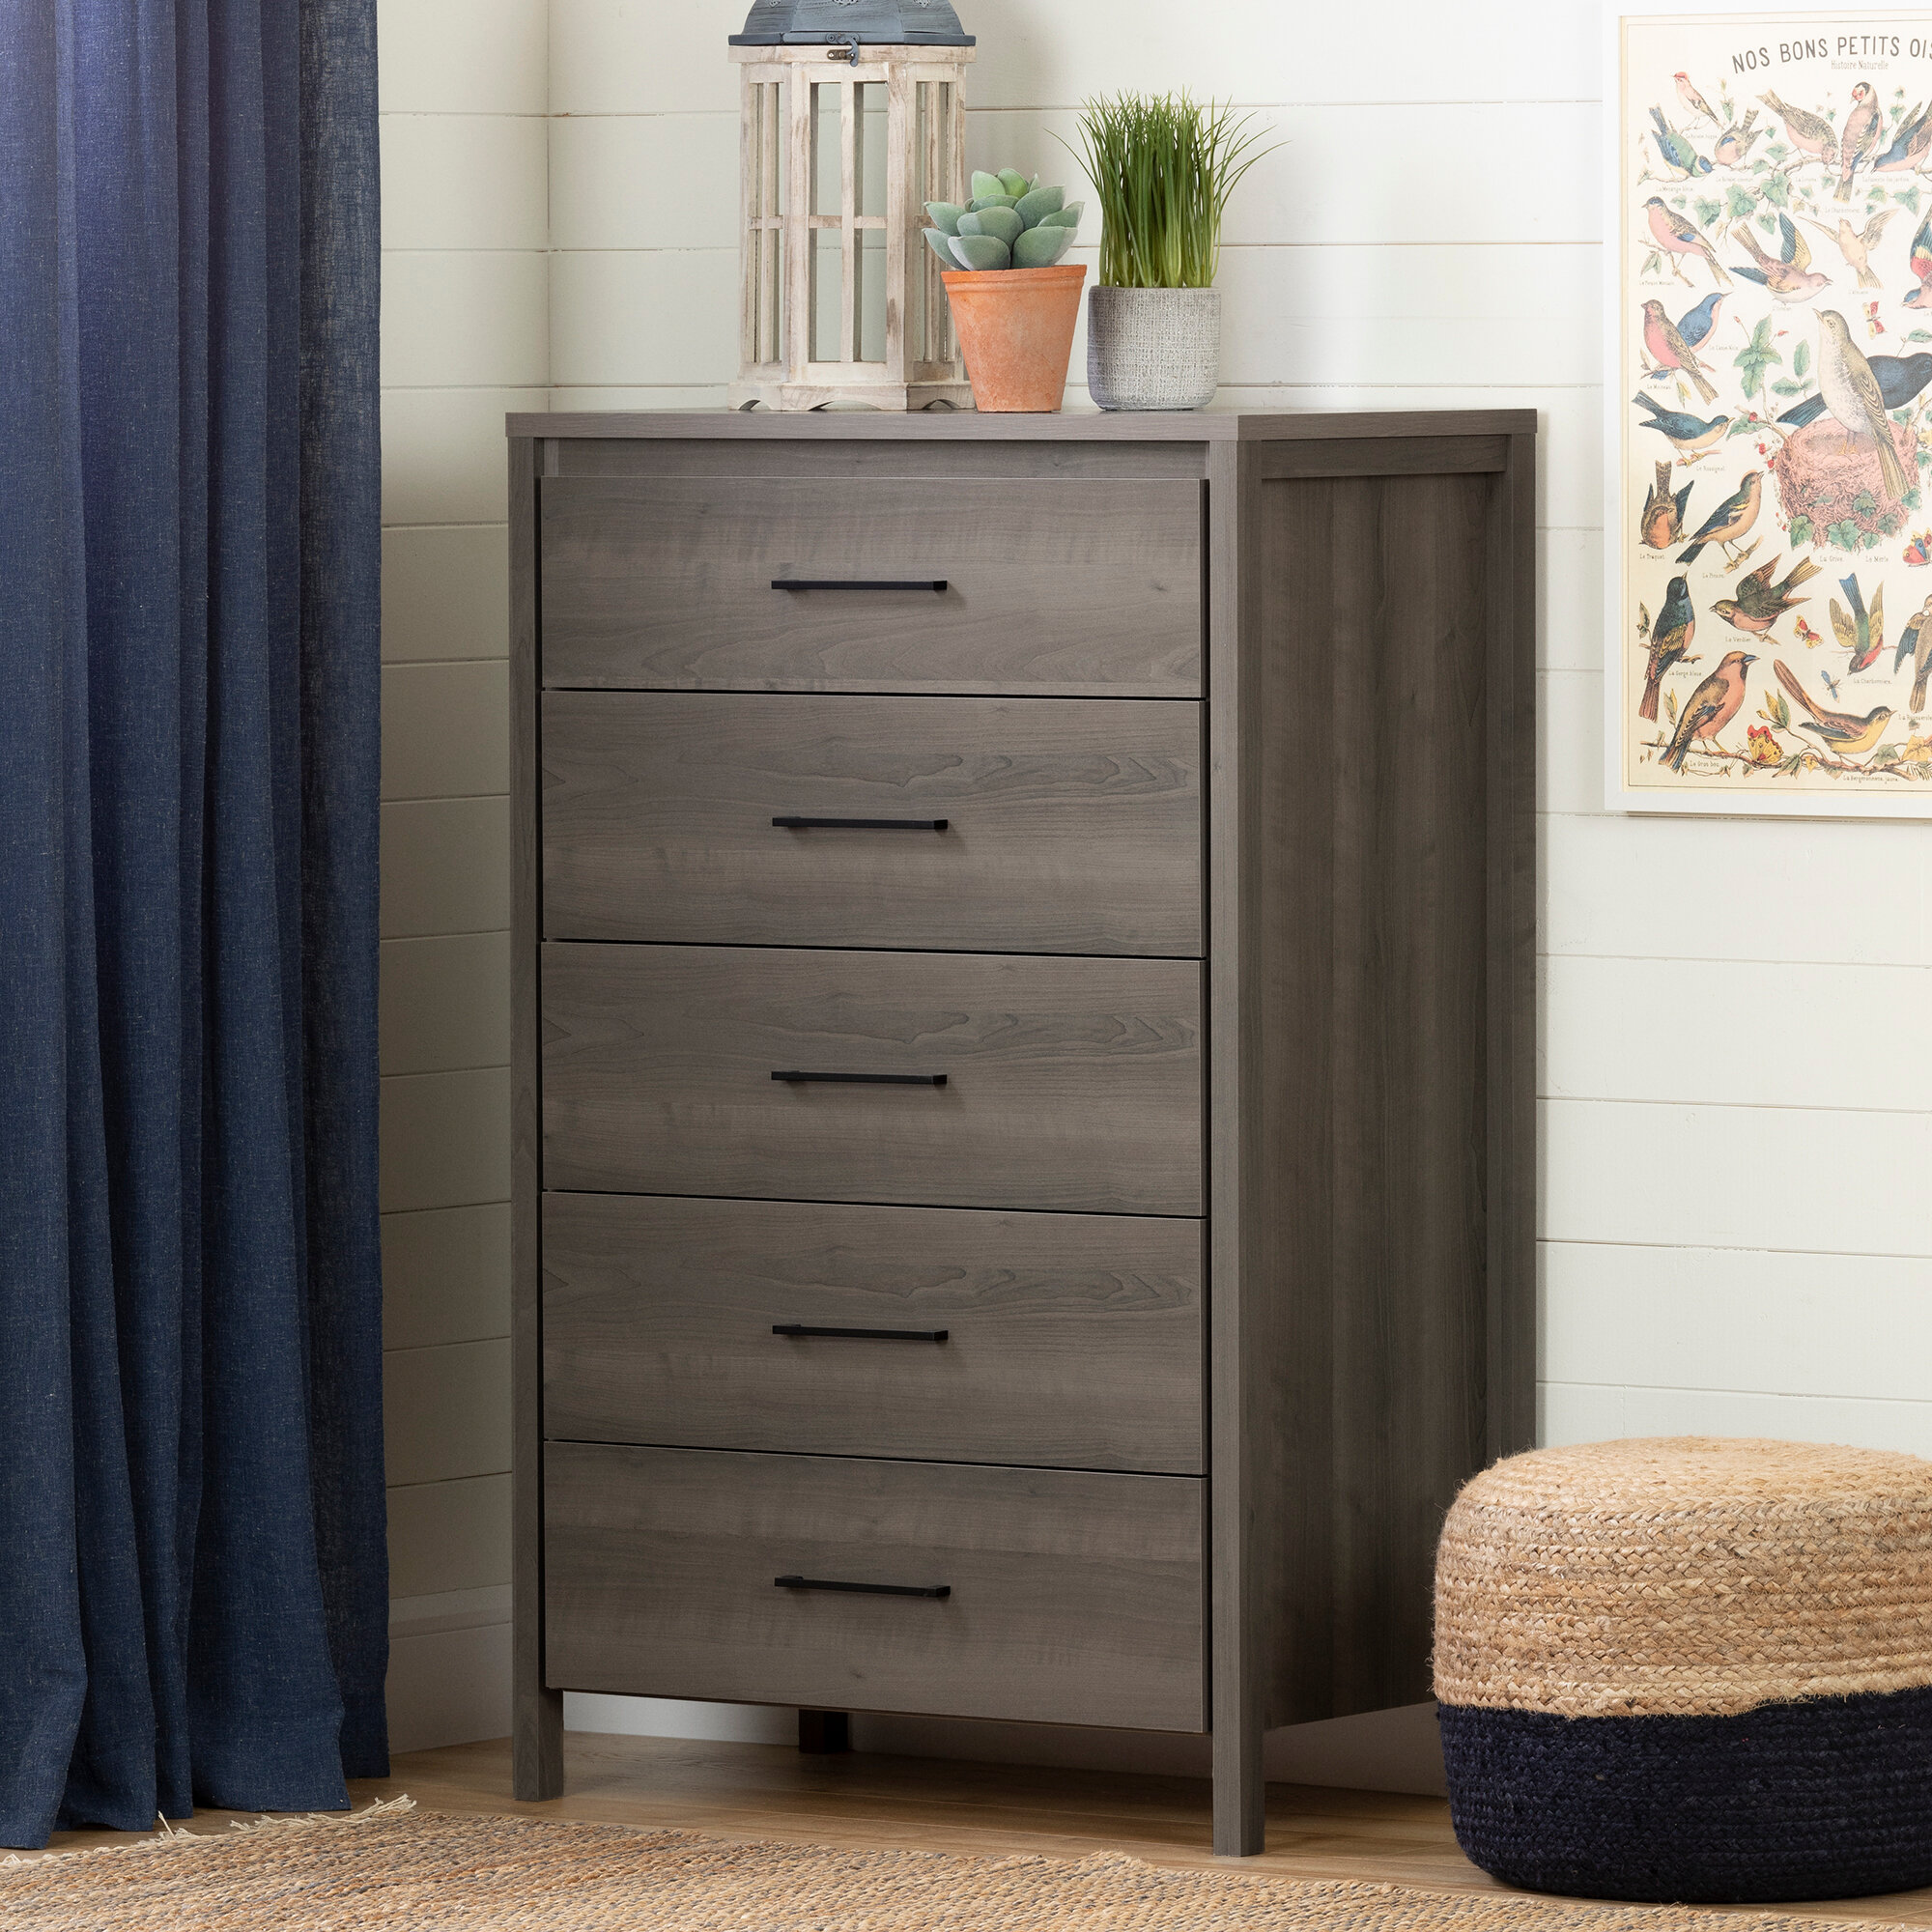 South Shore Gravity 5 Drawer Chest Reviews Wayfair